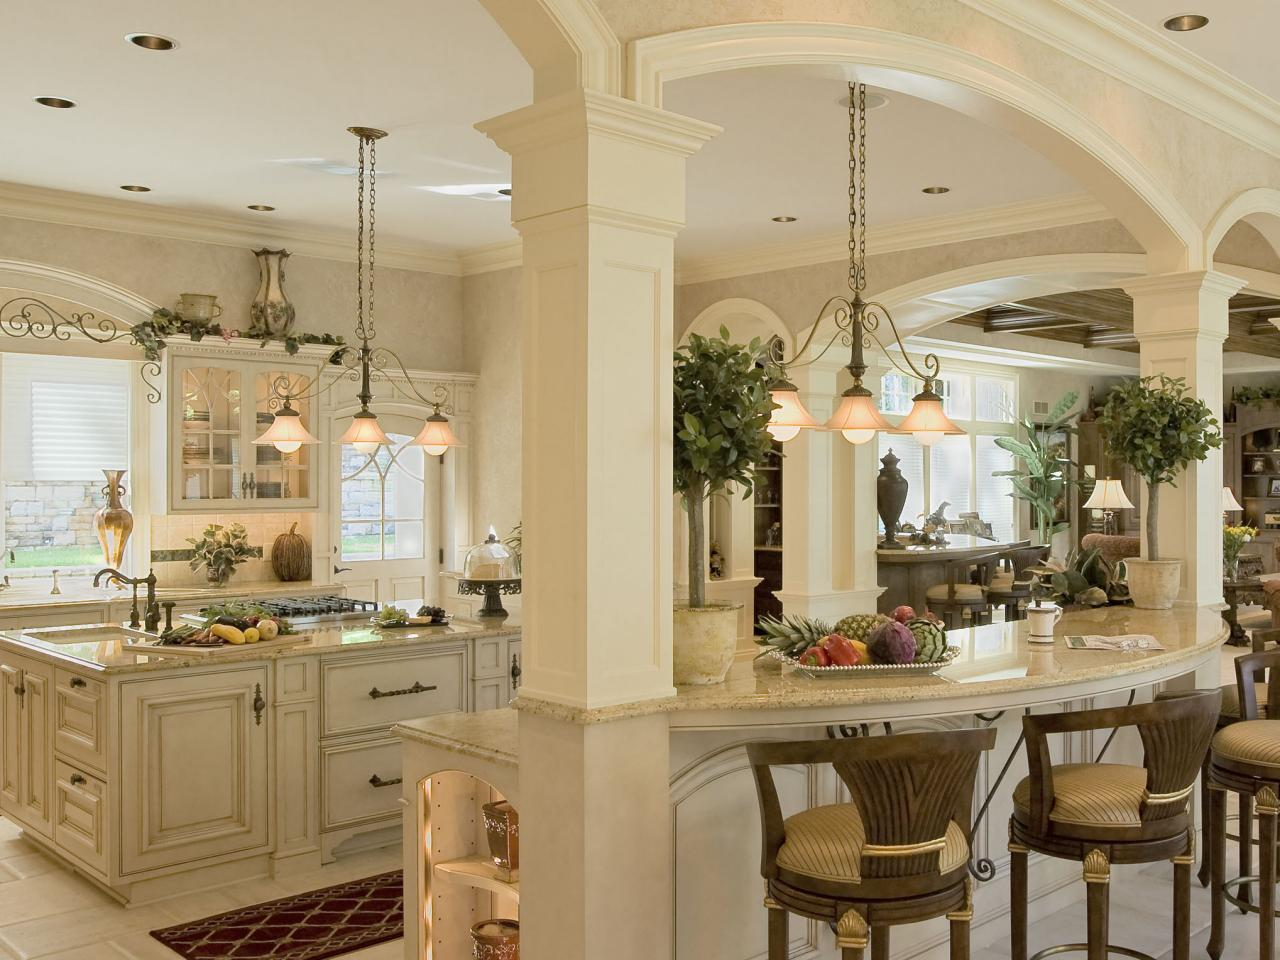 classic kitchen design pictures 10 inspiration enhancedhomes org